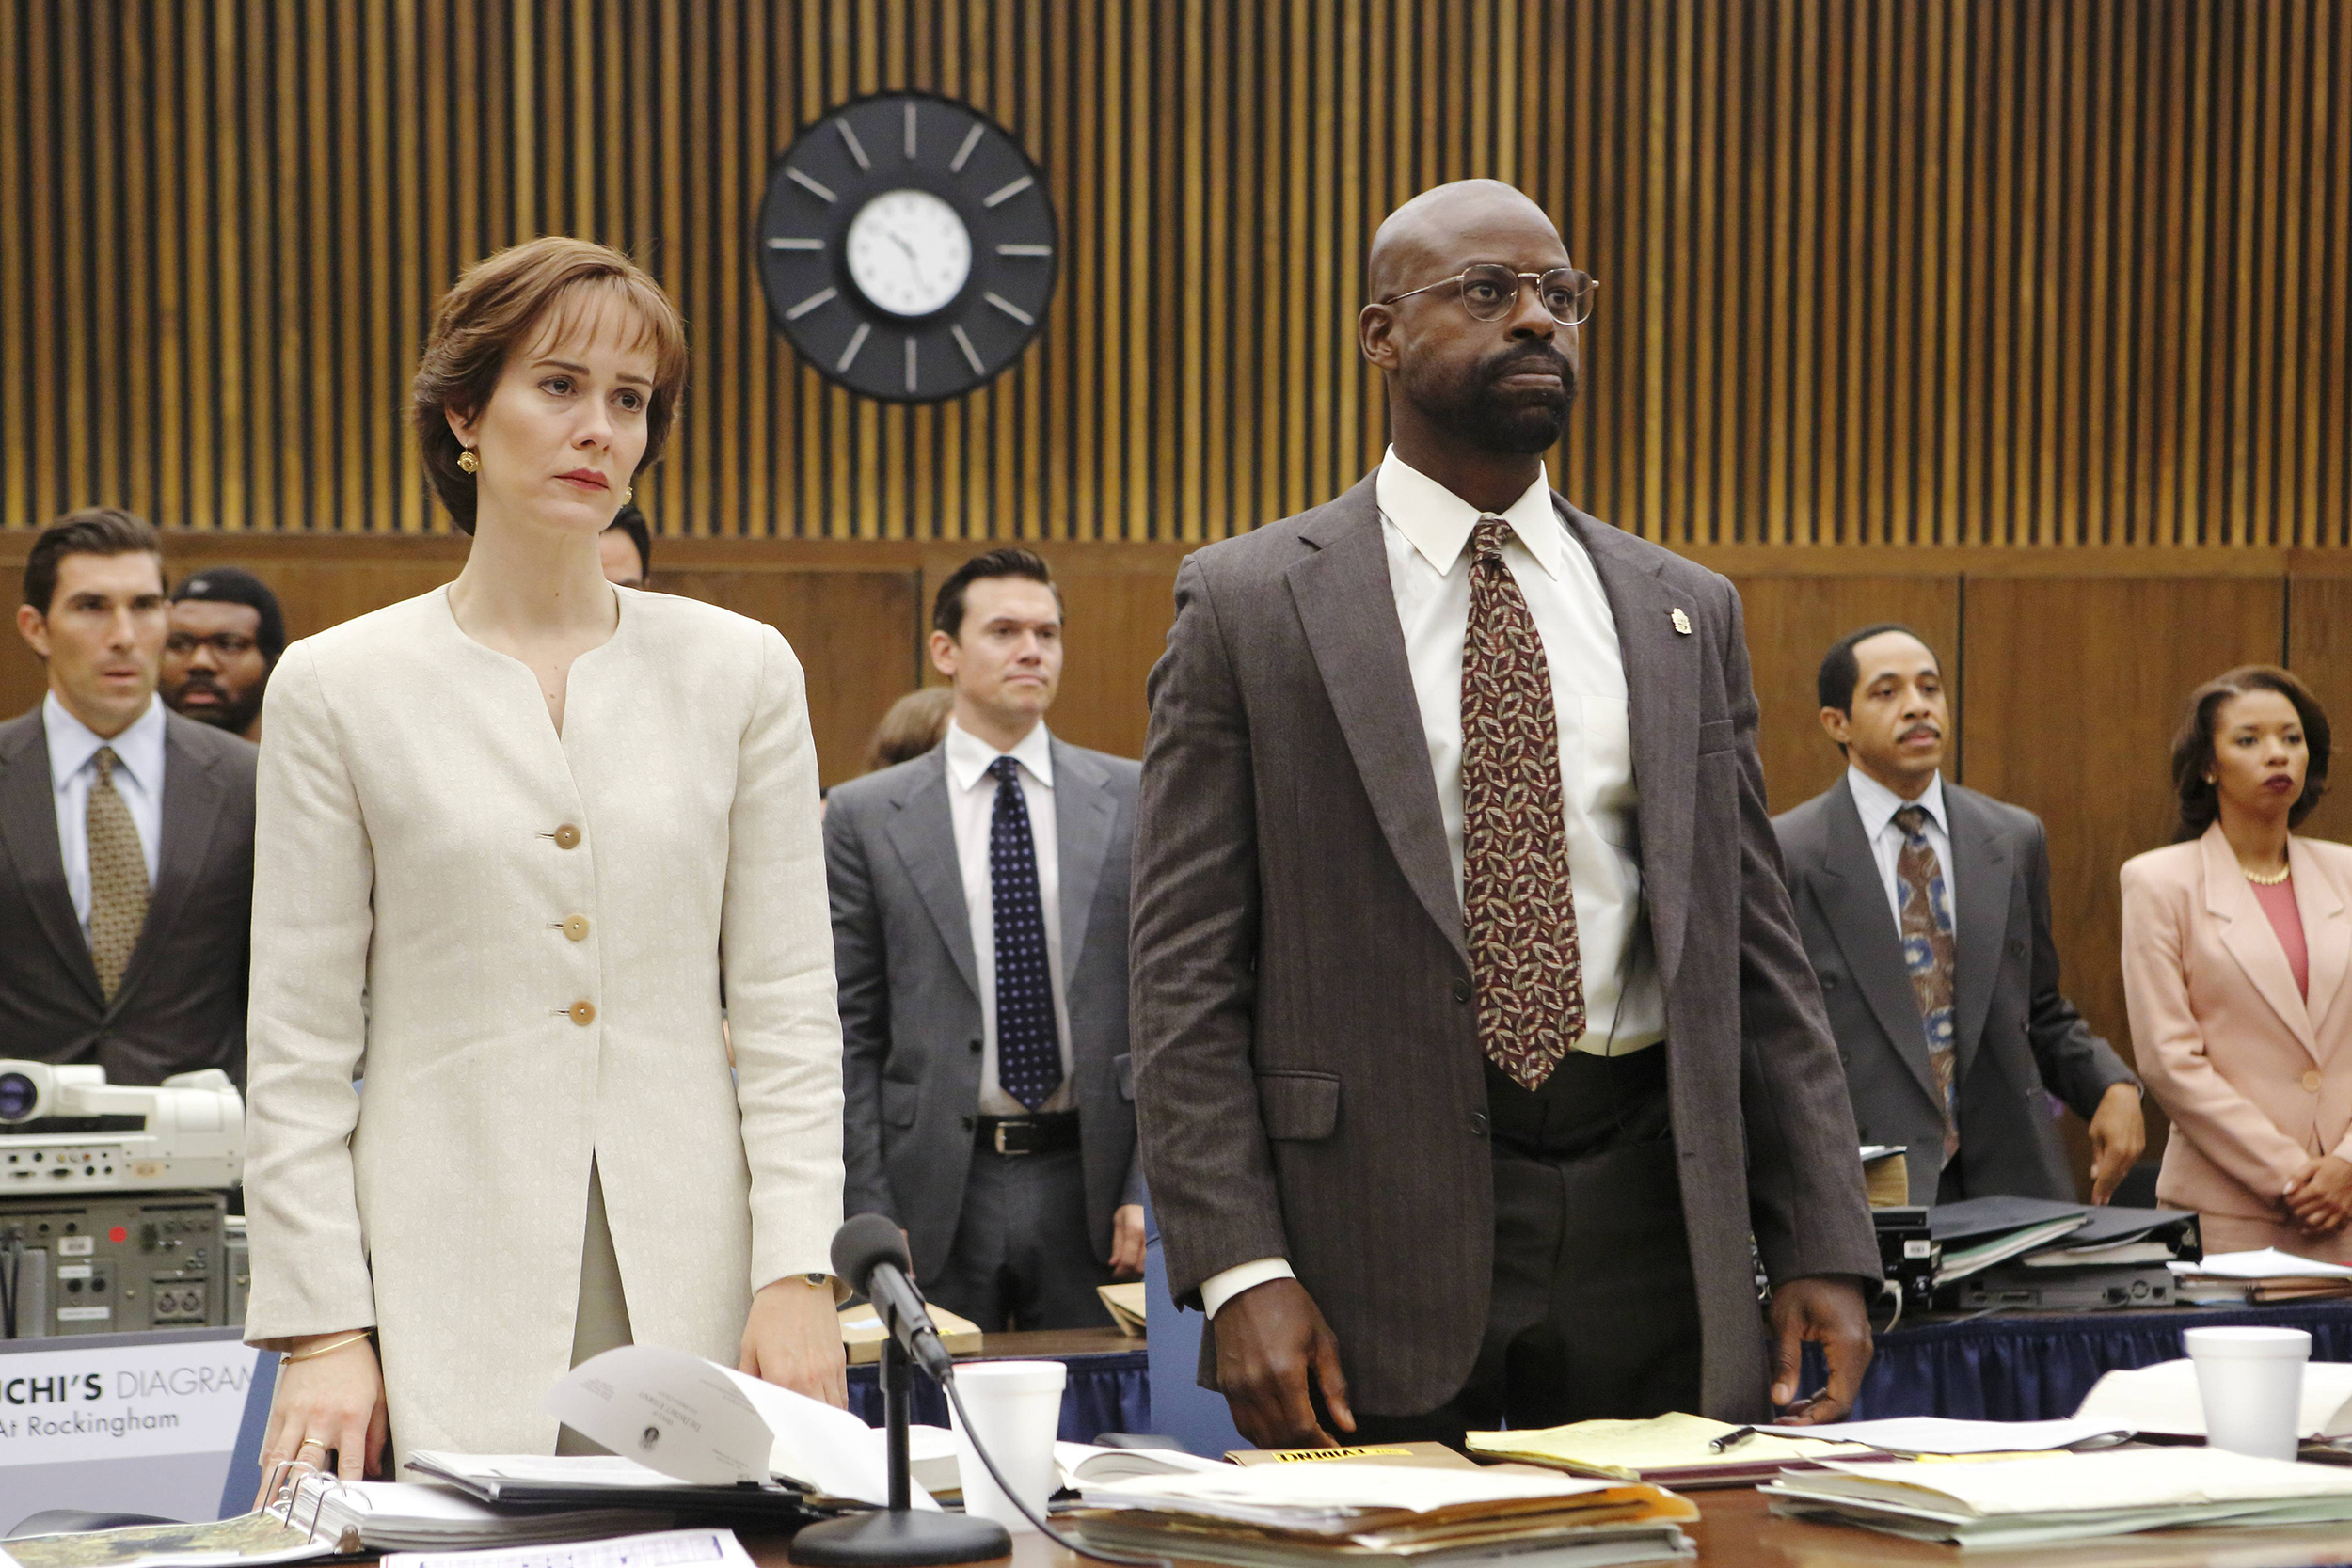 'People vs. OJ Simpson's' stellar cast set to take home lots of Emmy gold